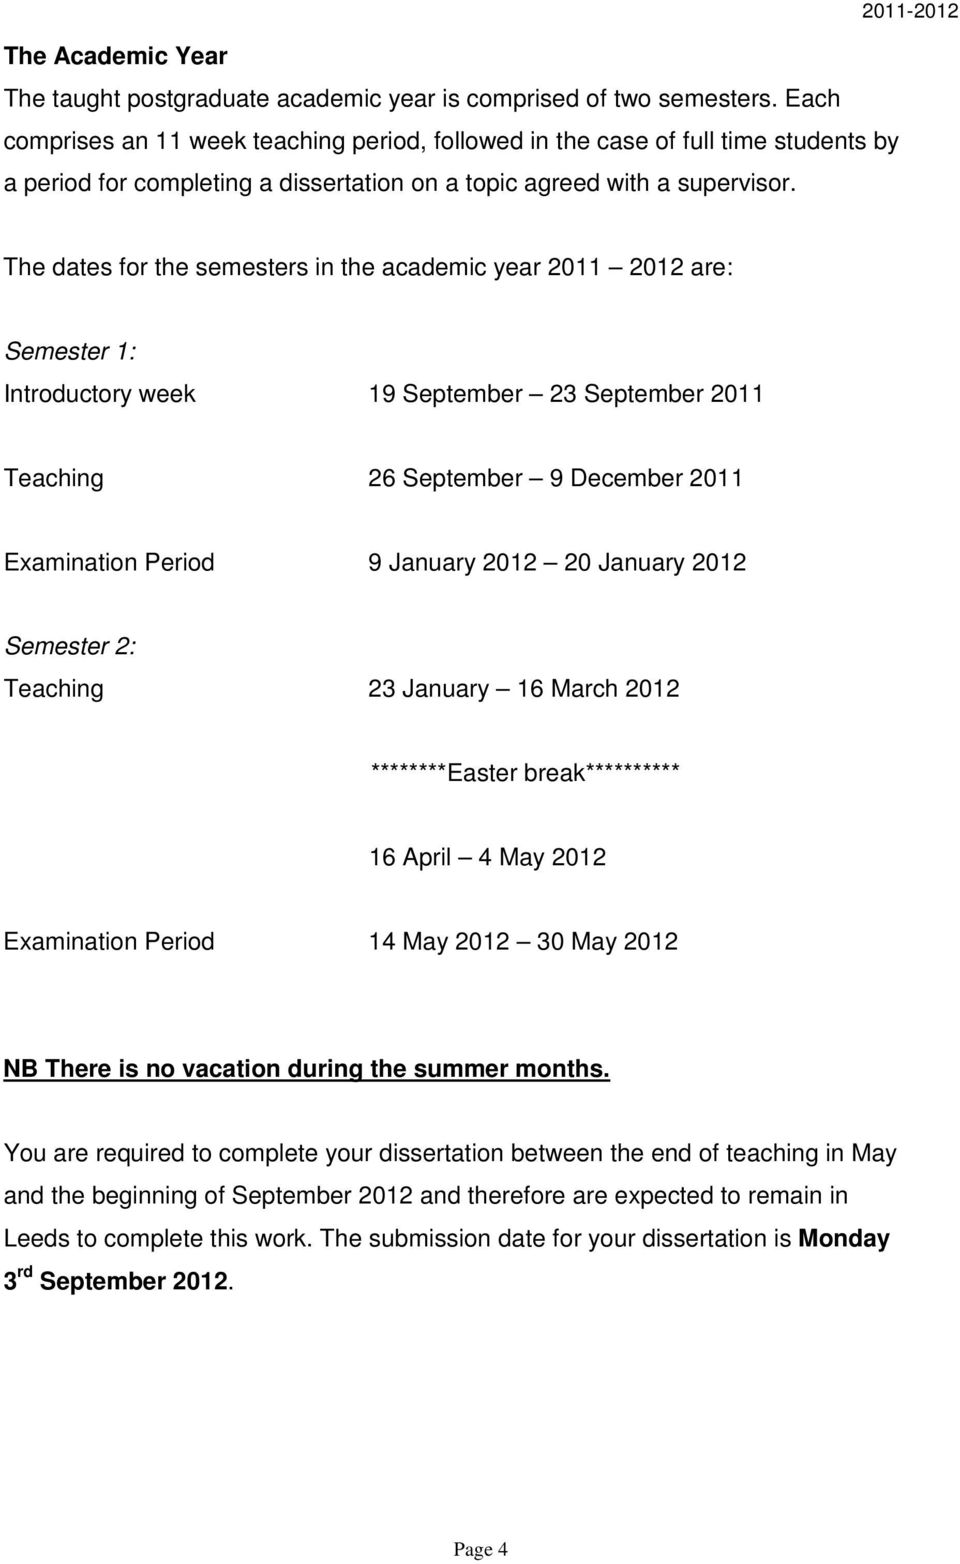 The dates for the semesters in the academic year 2011 2012 are: Semester 1: Introductory week 19 September 23 September 2011 Teaching 26 September 9 December 2011 Examination Period 9 January 2012 20